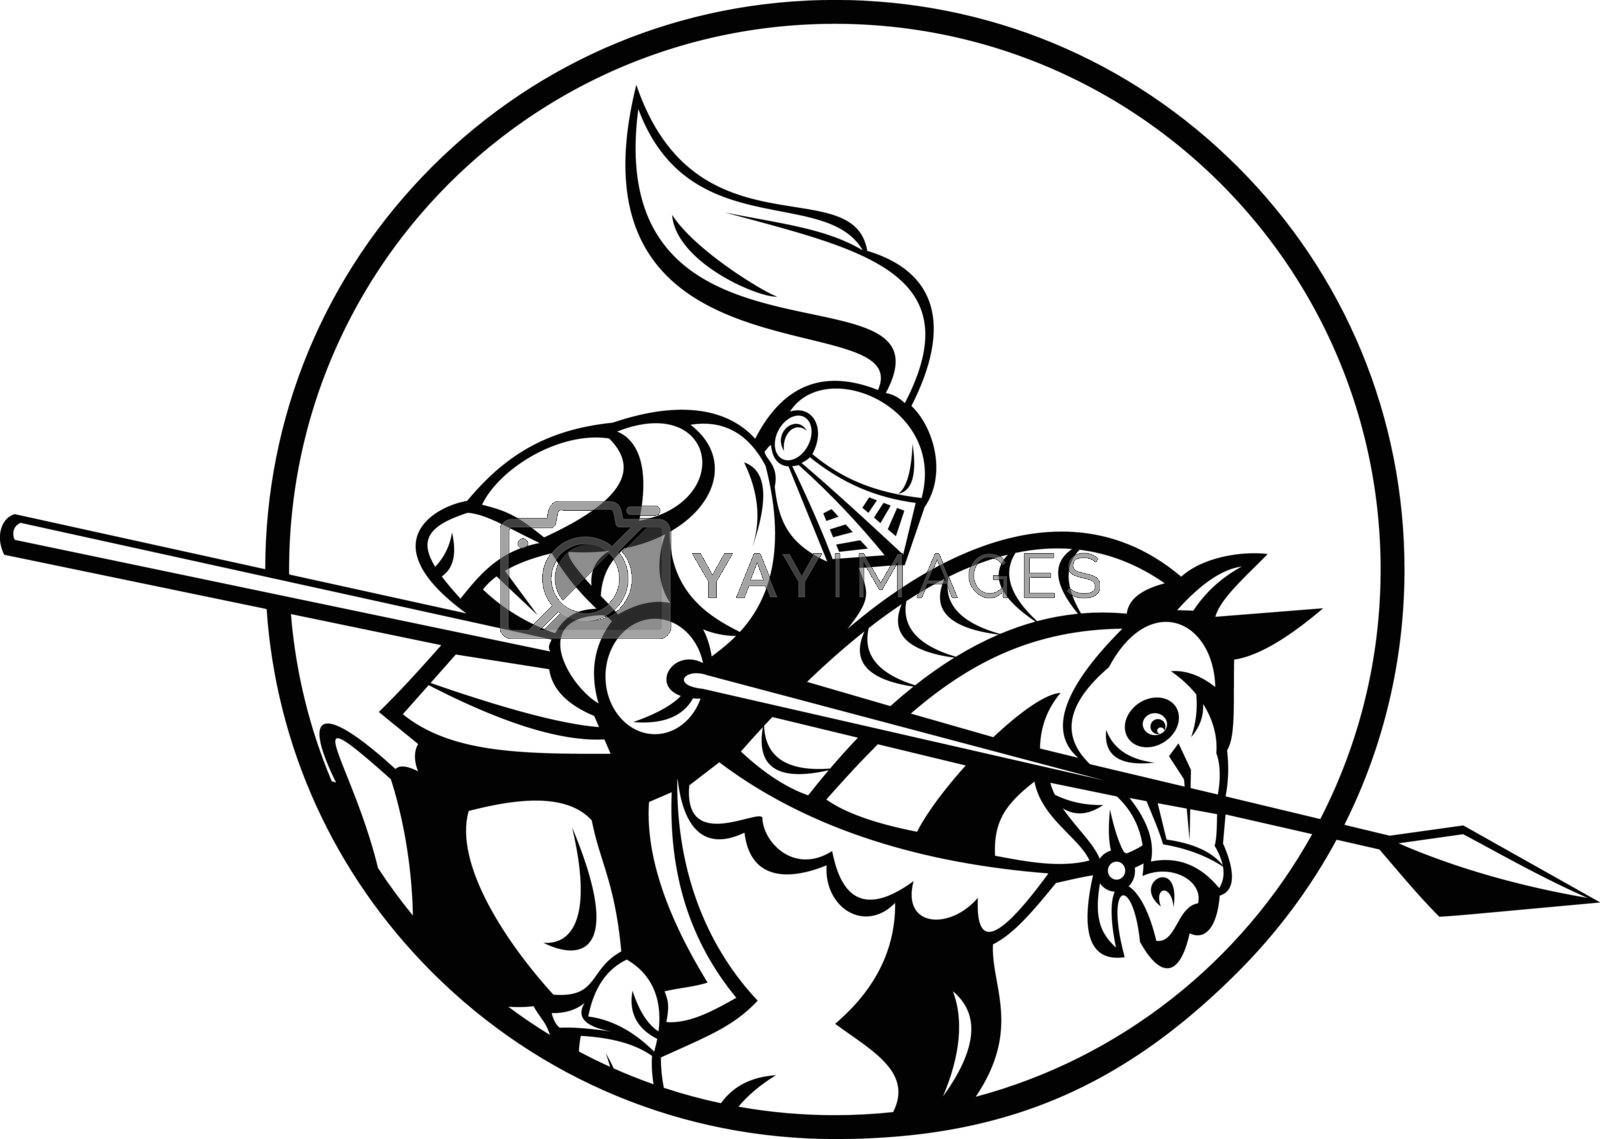 Retro style illustration of a medieval knight with lance riding steed set inside circle viewed from side on isolated background done in black and white.